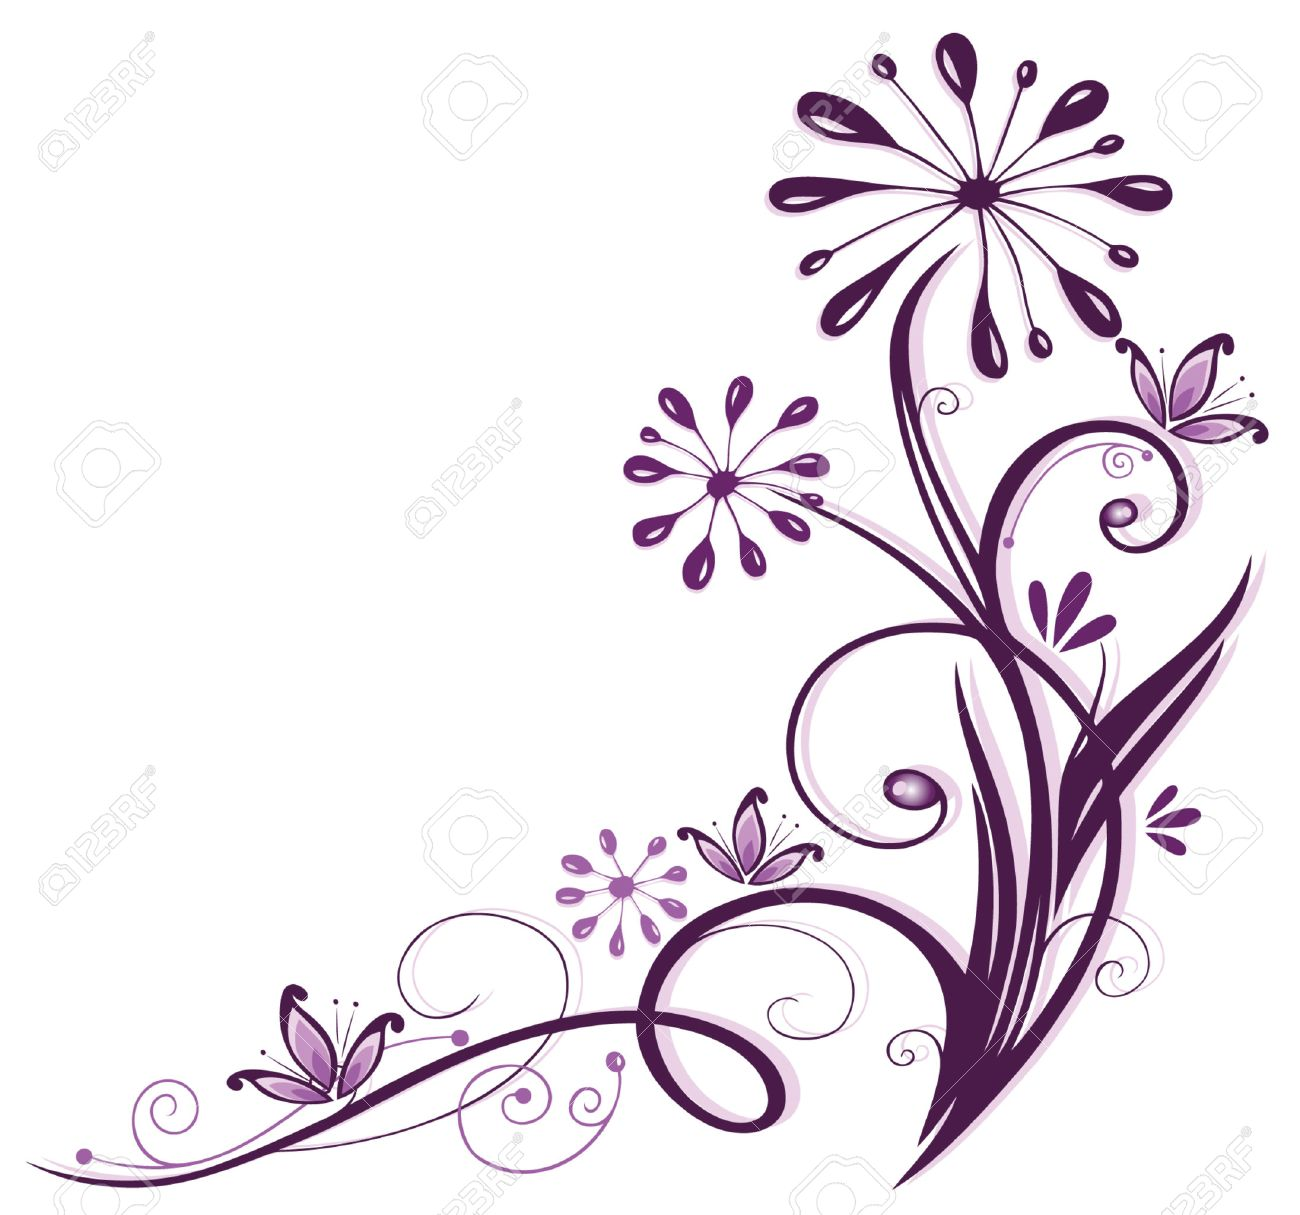 butterfly border images u0026 stock pictures royalty free butterfly